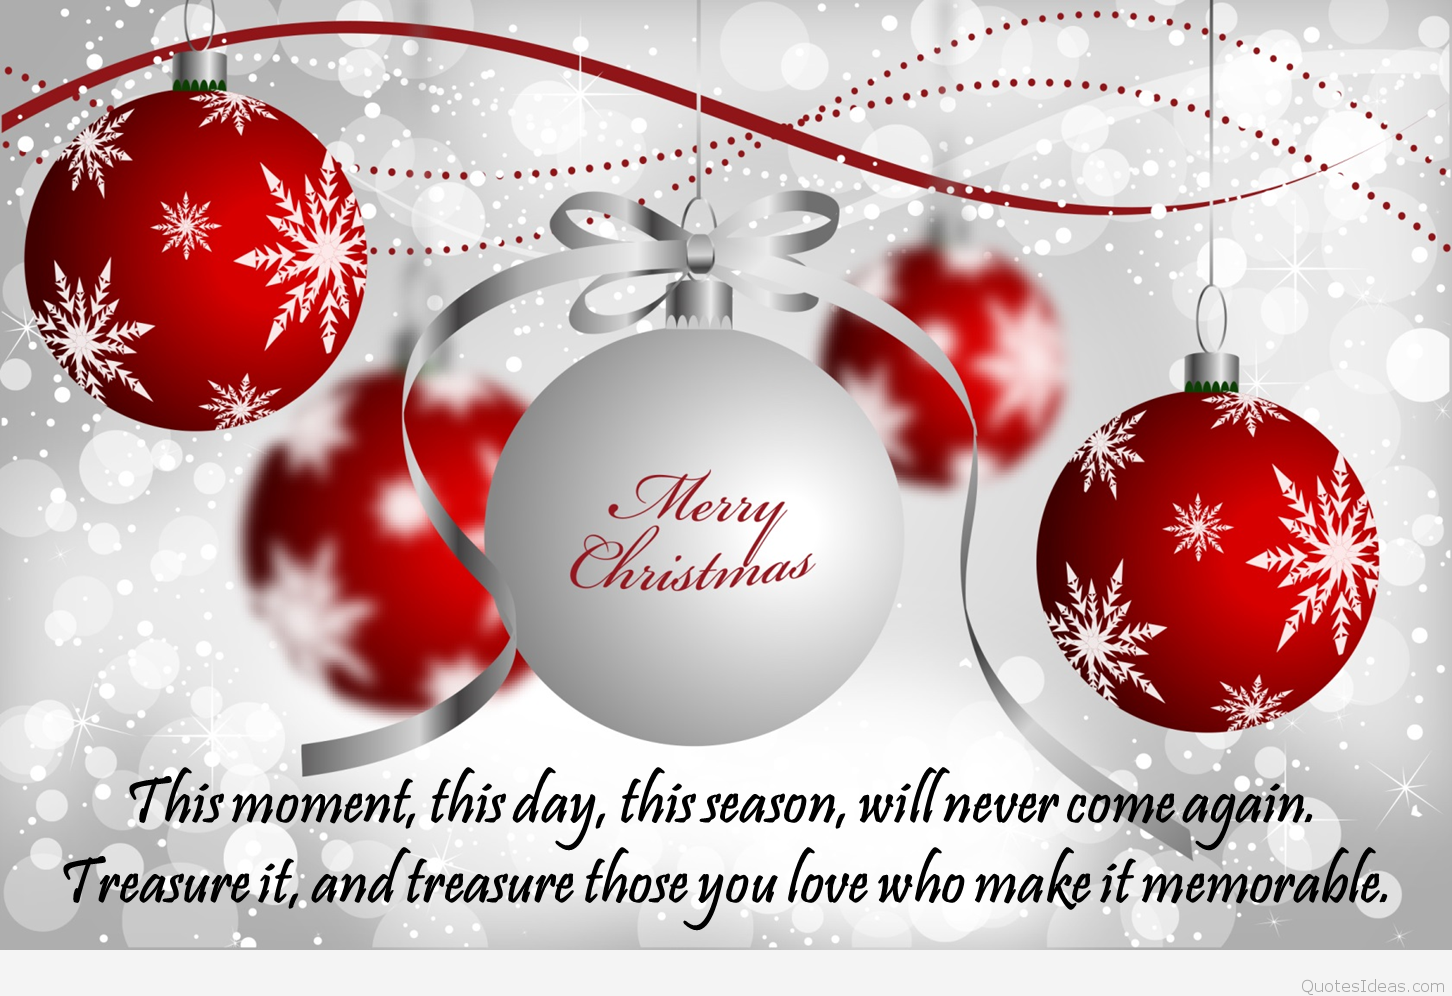 Merry Christmas Family Quotes Wishes Christmas Wishes Quotes Merry Christmas Quotes Merry Christmas Wishes